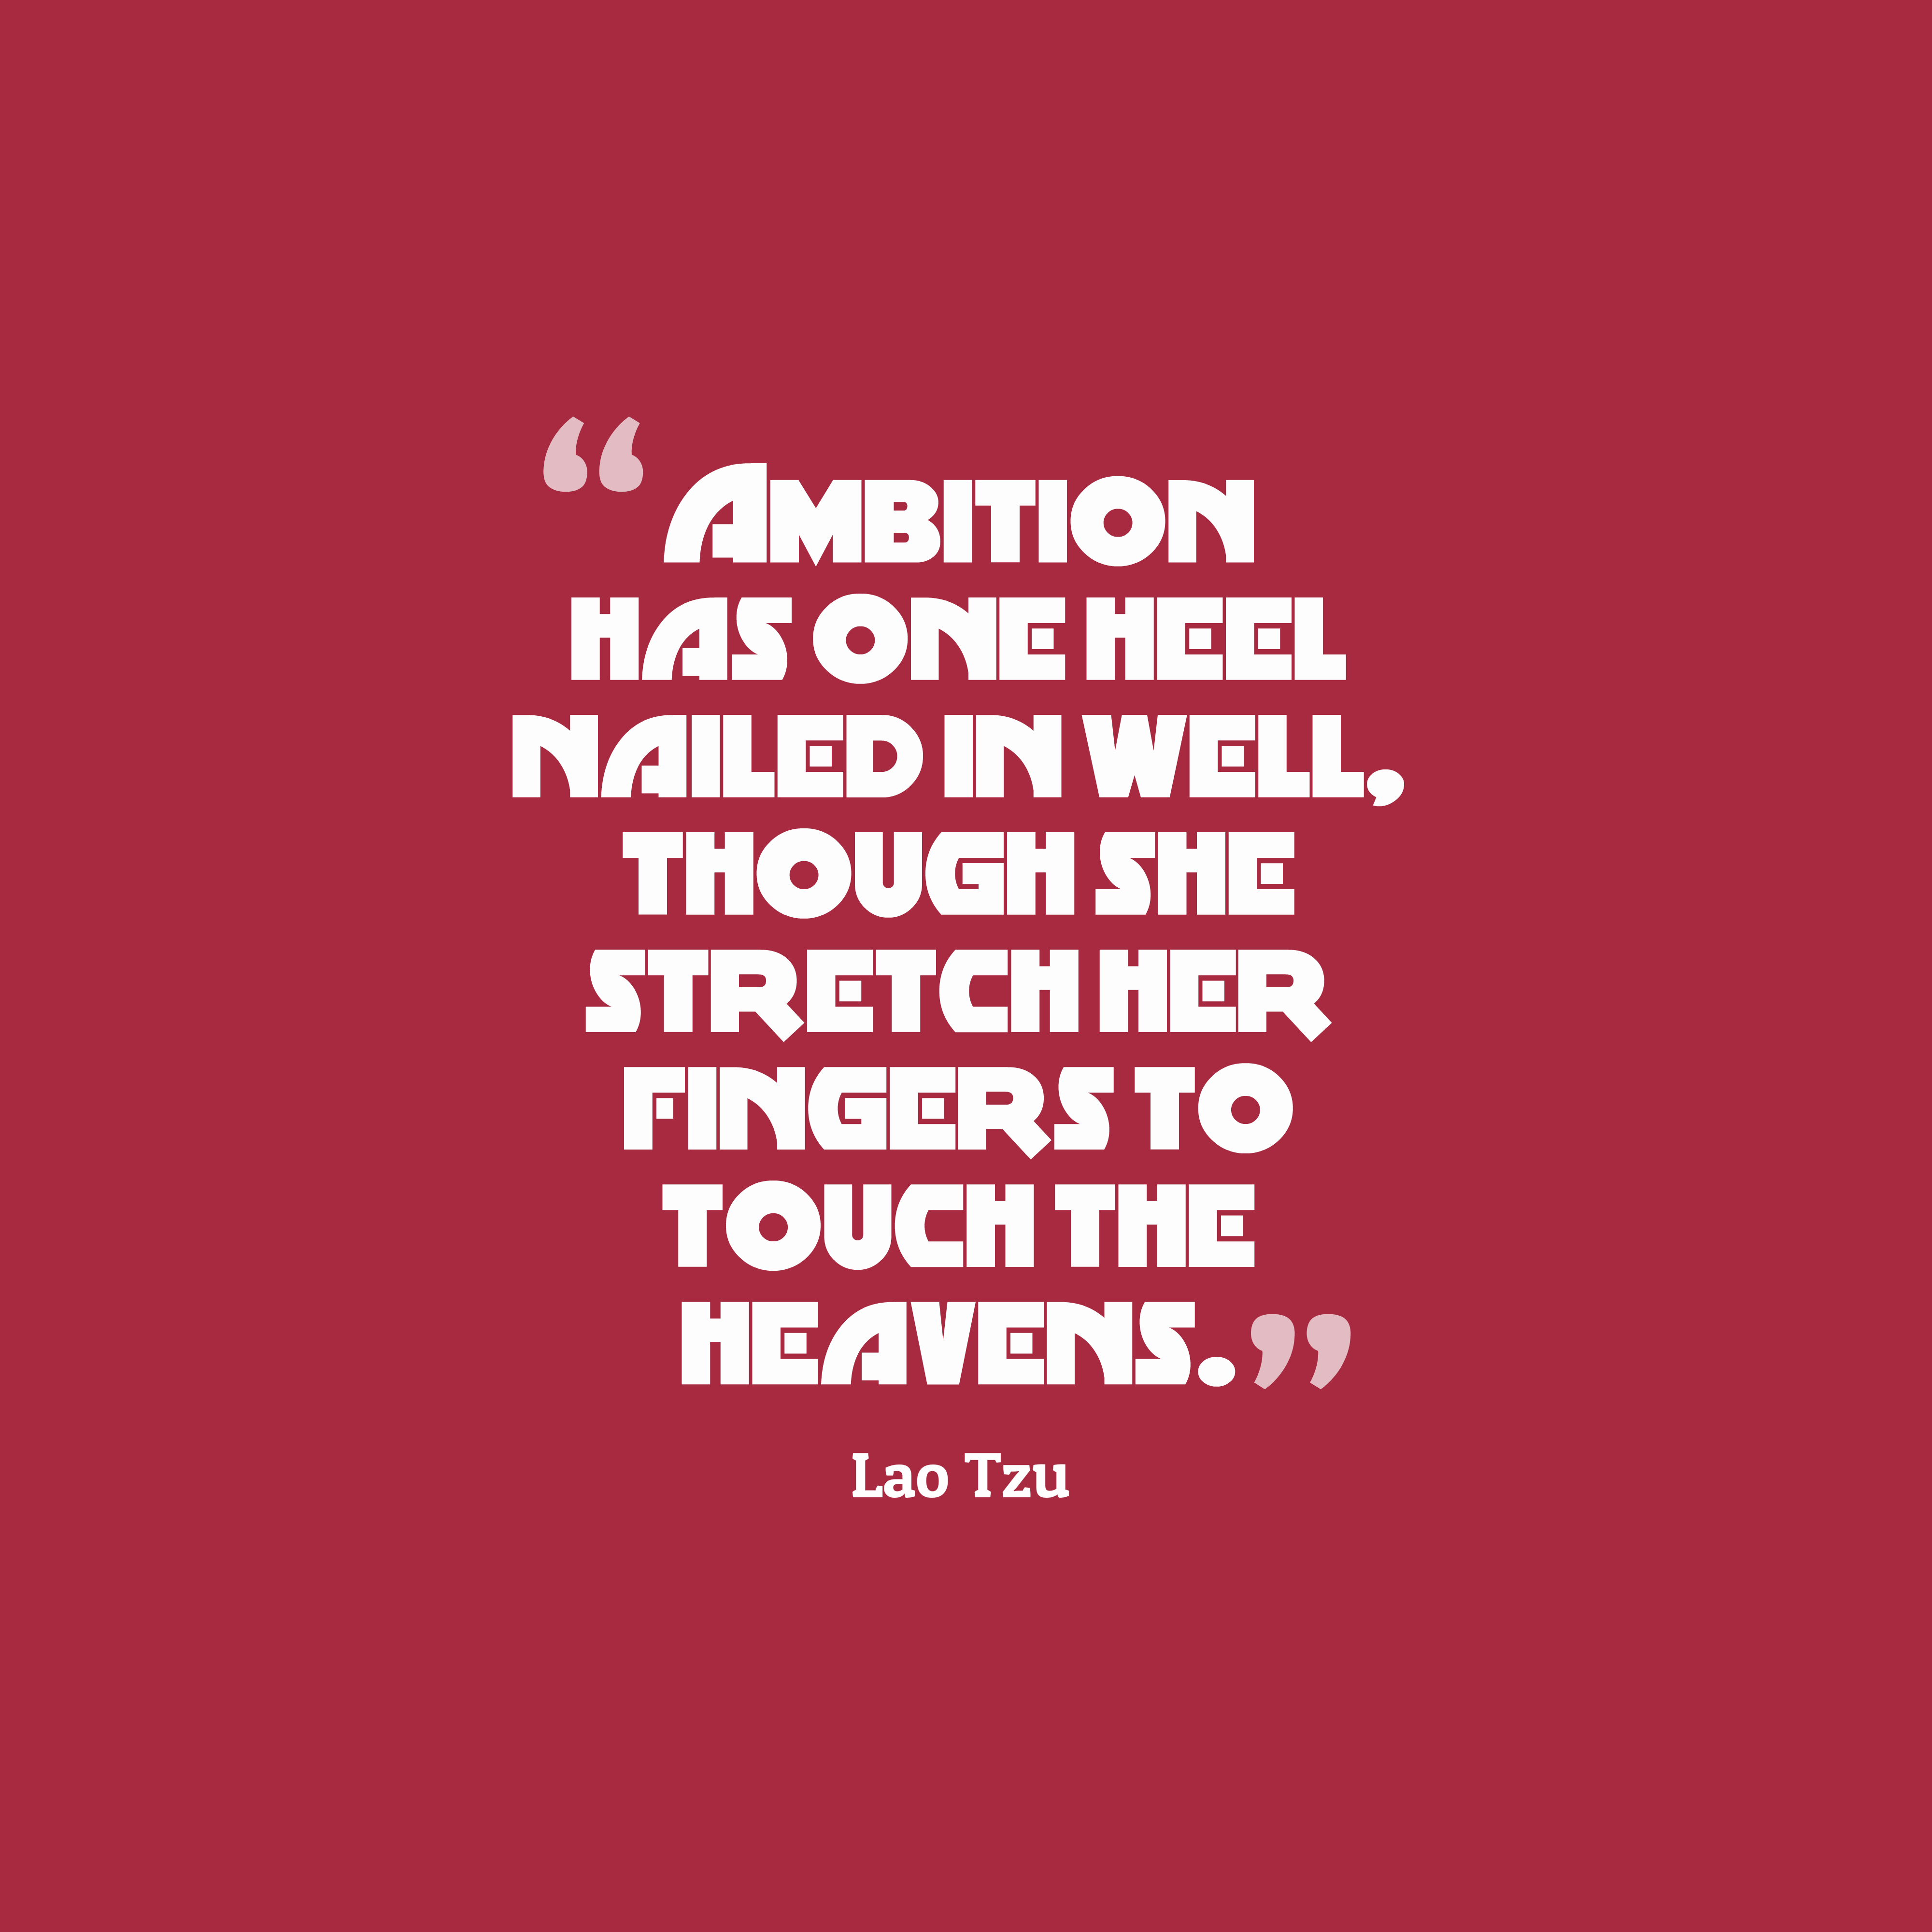 Quotes image of Ambition has one heel nailed in well, though she stretch her fingers to touch the heavens.